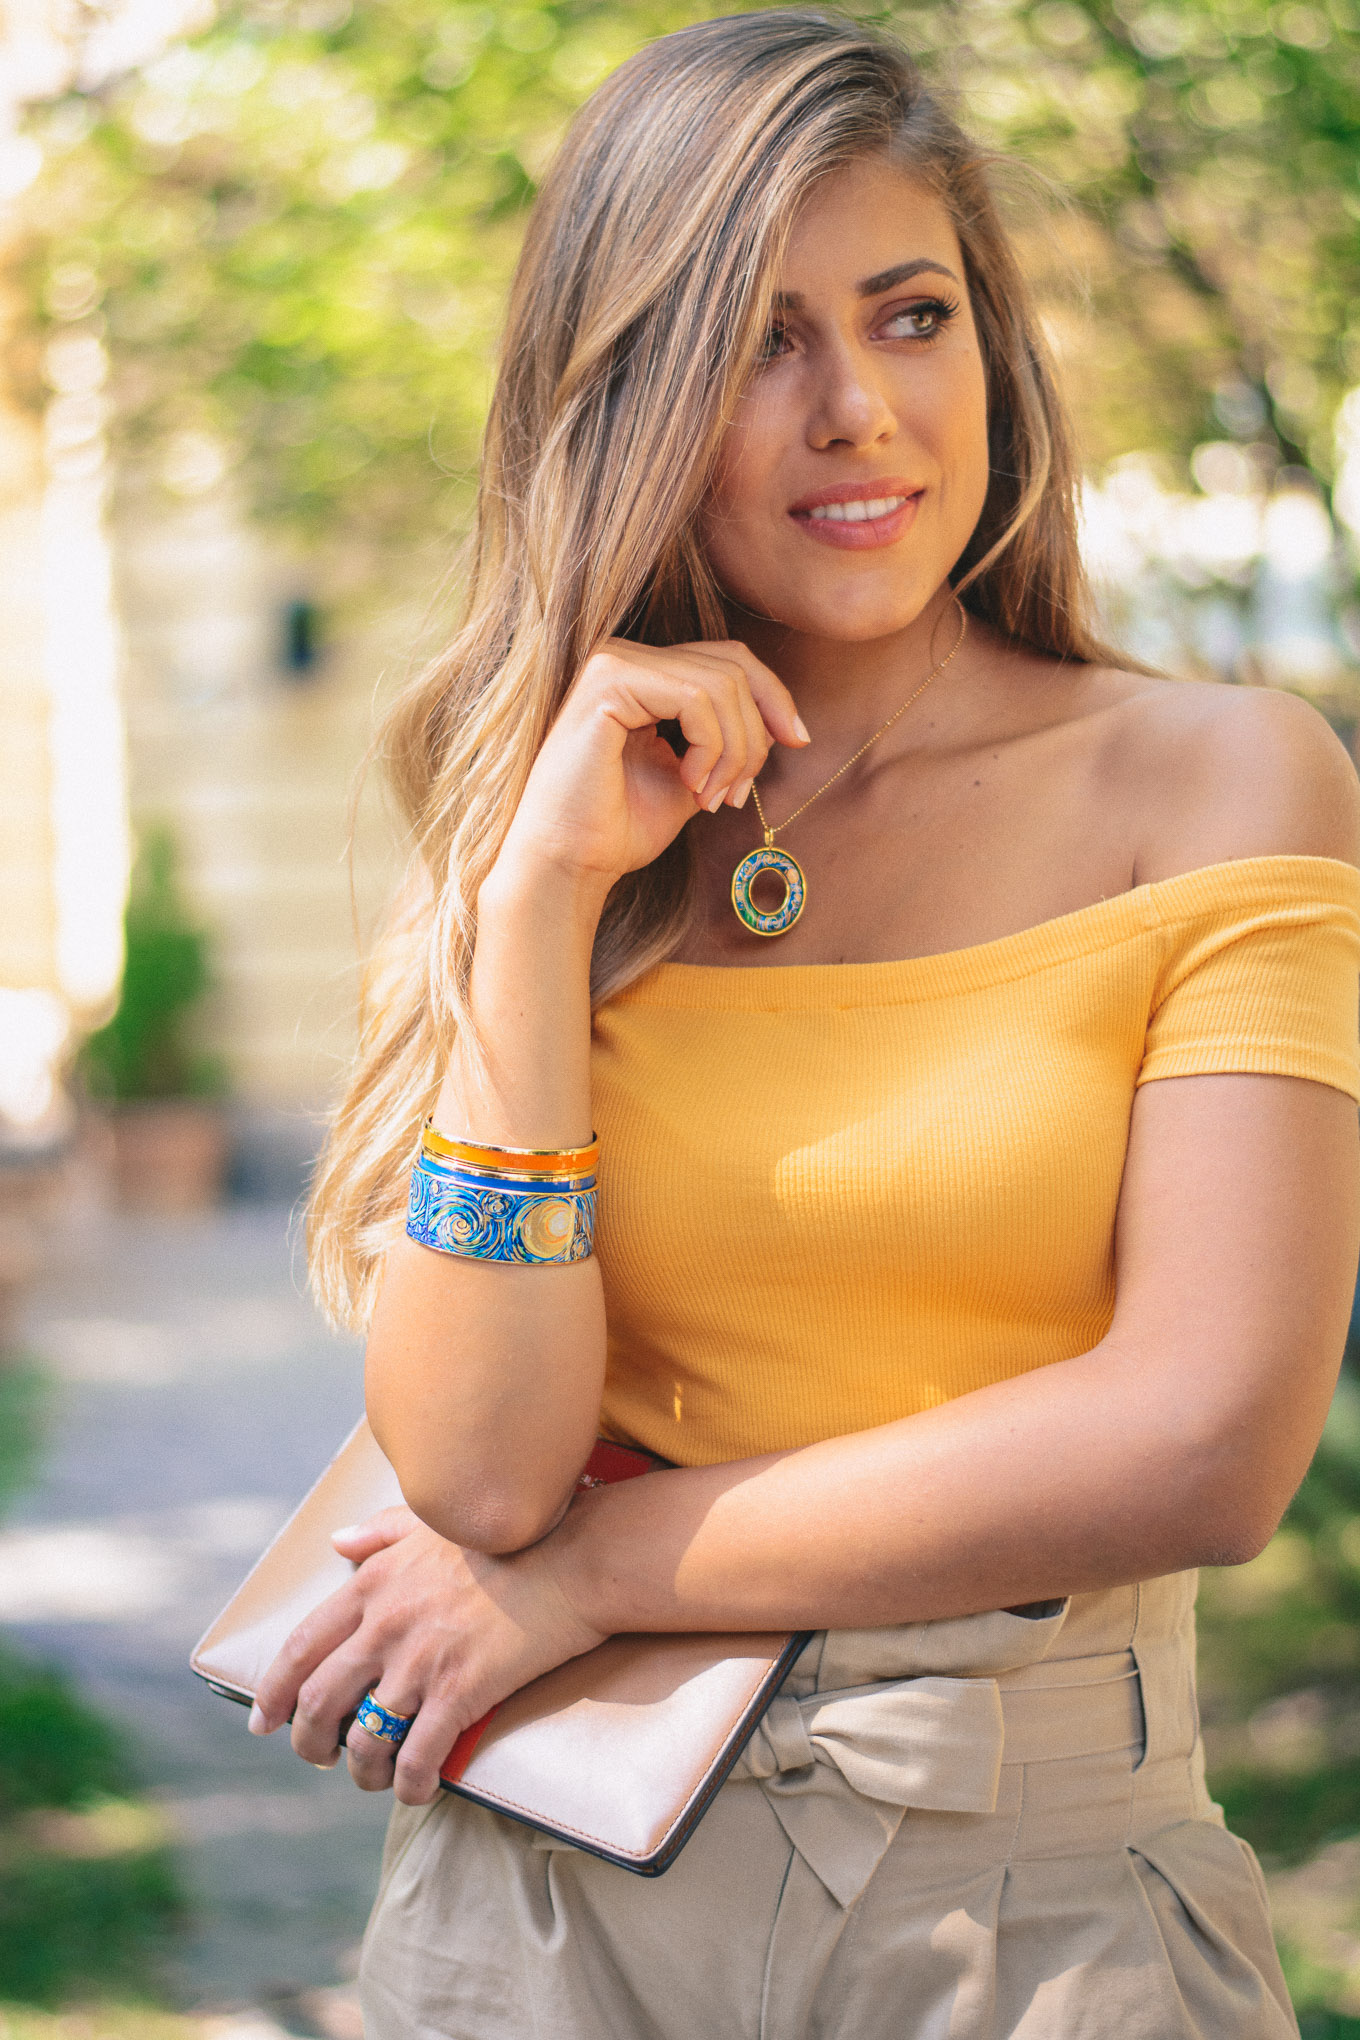 Freywille Vincent van Gogh jewelry